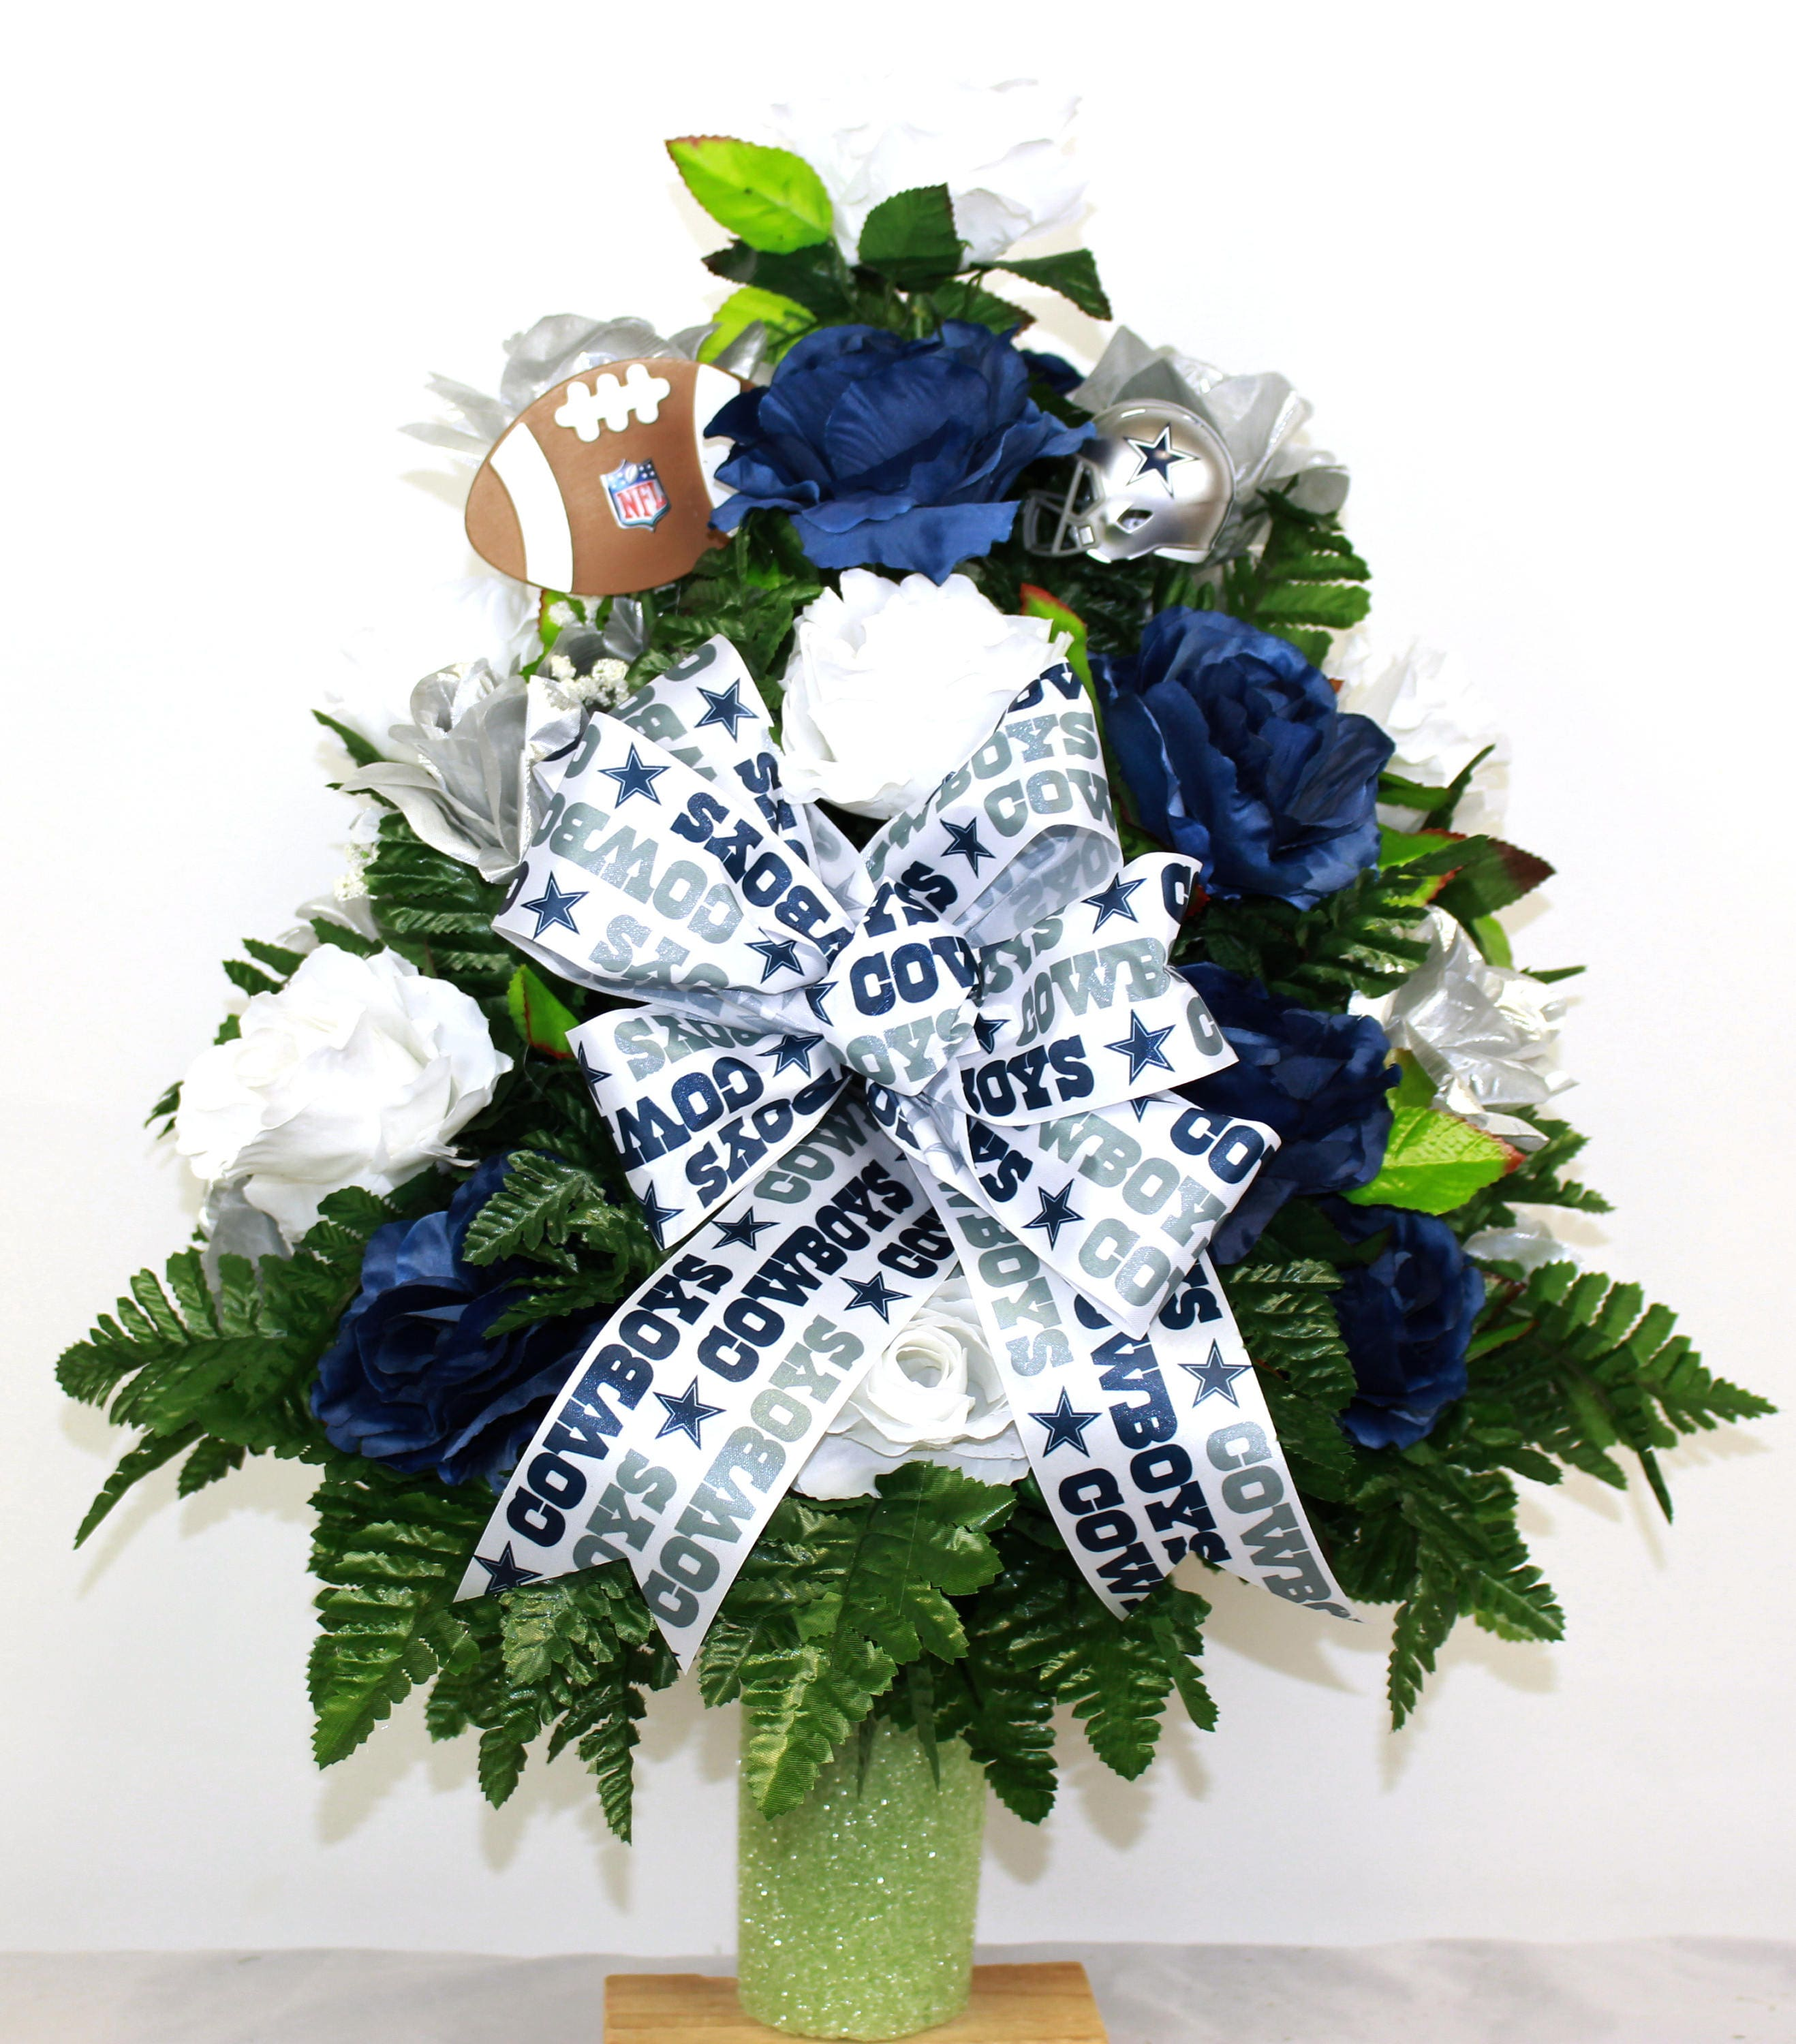 Dallas Cowboy Fan Vase Cemetery Flower Arrangement Etsy